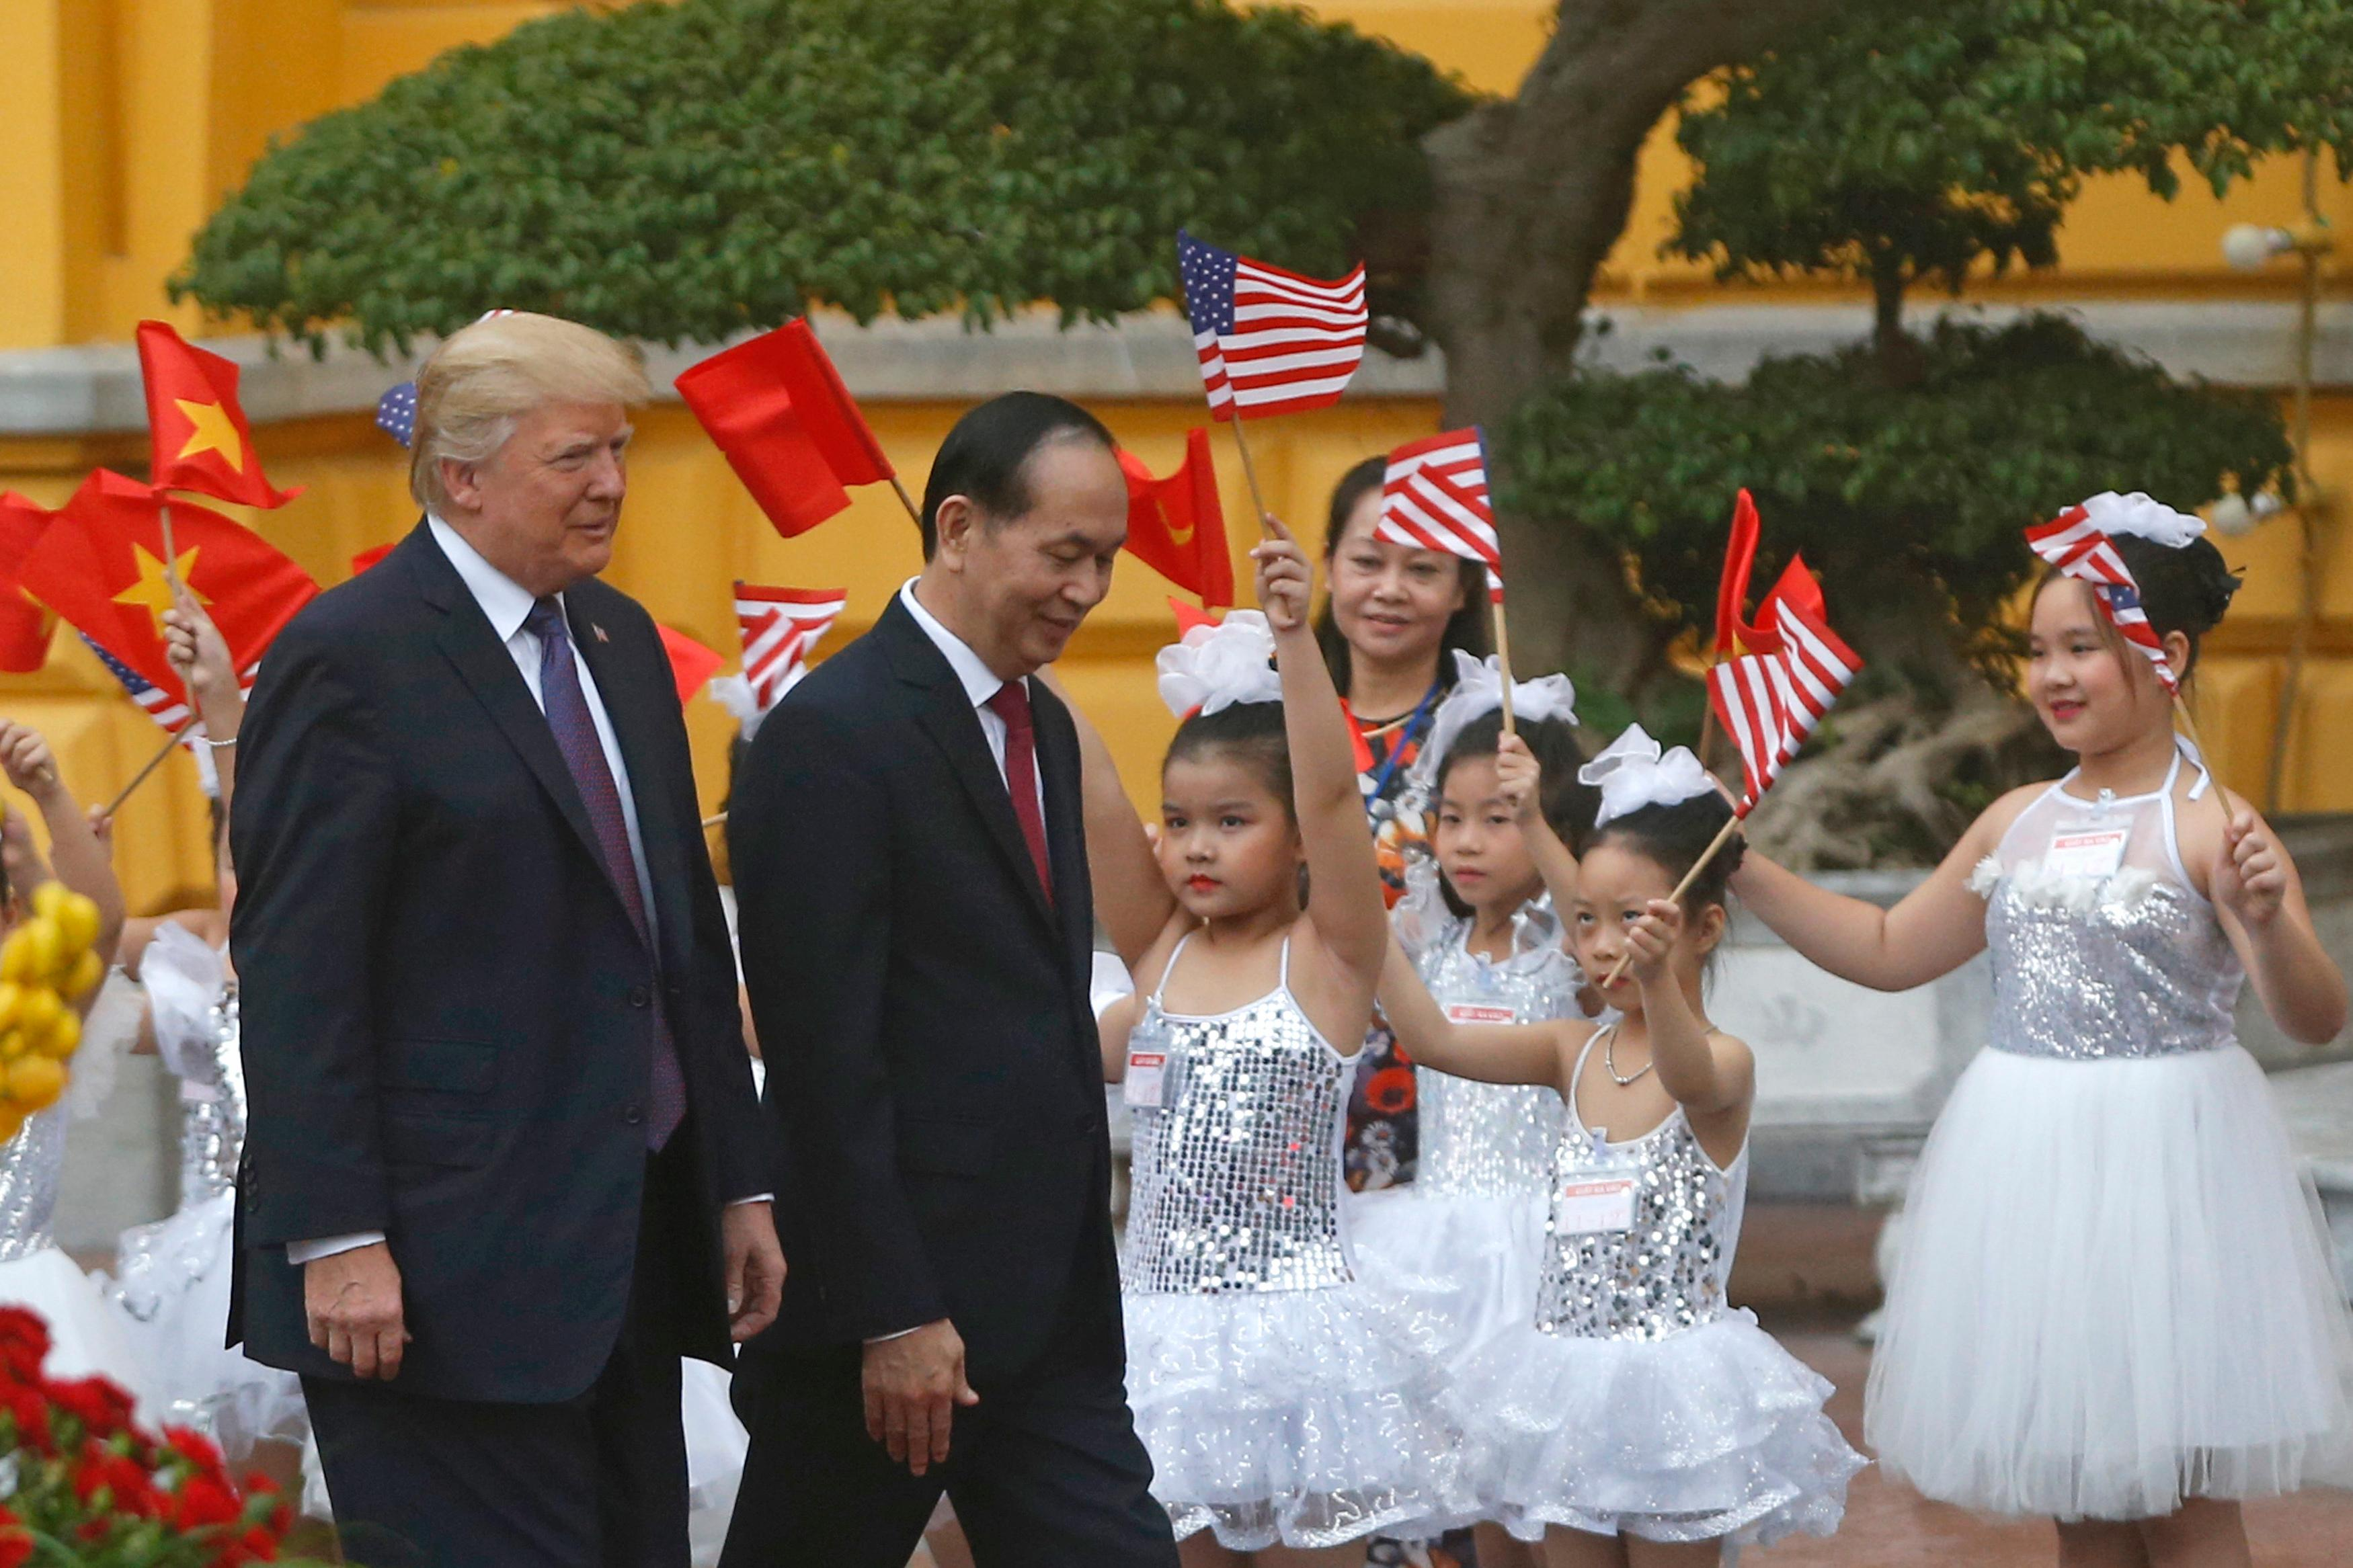 U.S. President Donald Trump, left,  and Vietnam's President Tran Dai Quang attend the welcoming ceremony at the Presidential Palace in Hanoi, Vietnam Sunday, Nov. 12, 2017. (Kham/Pool Photo via AP)